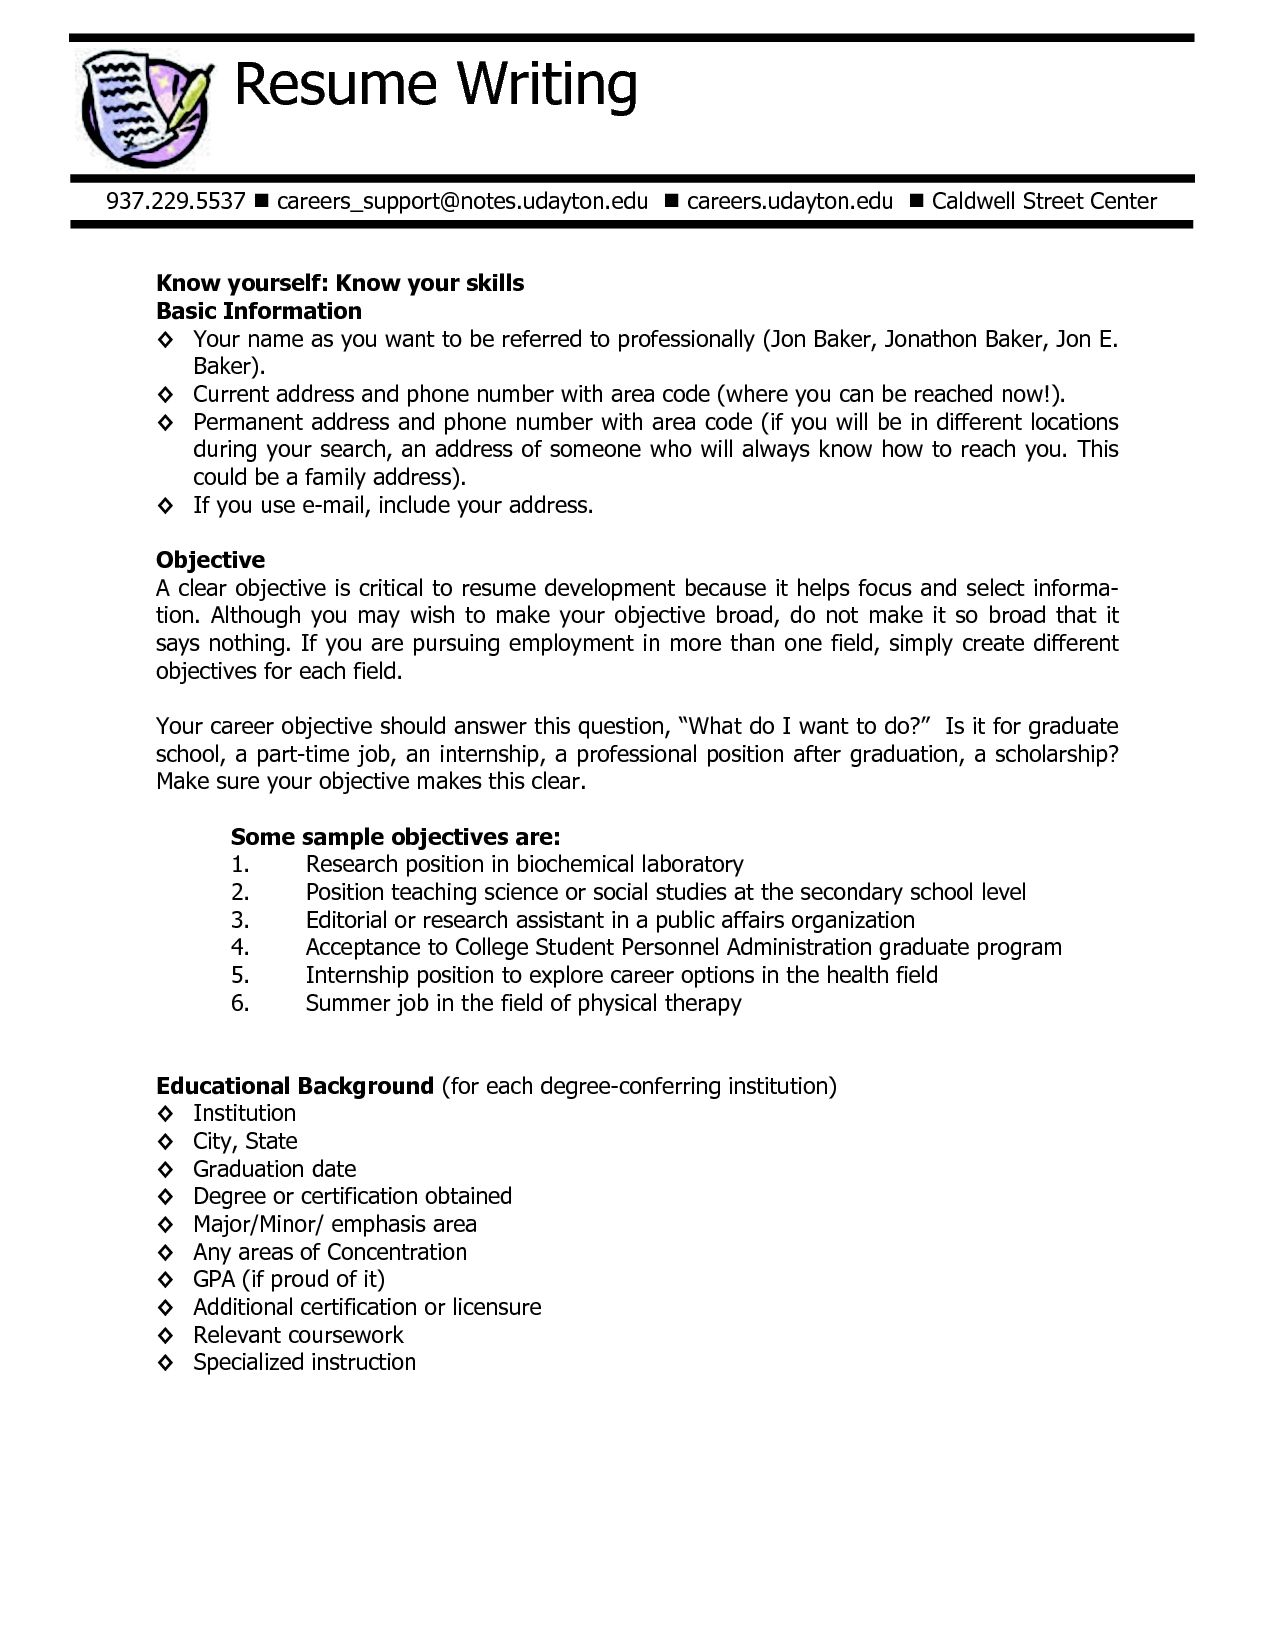 Objective Of Resume Resume Example Server Objective Examples Good For Writing Sample